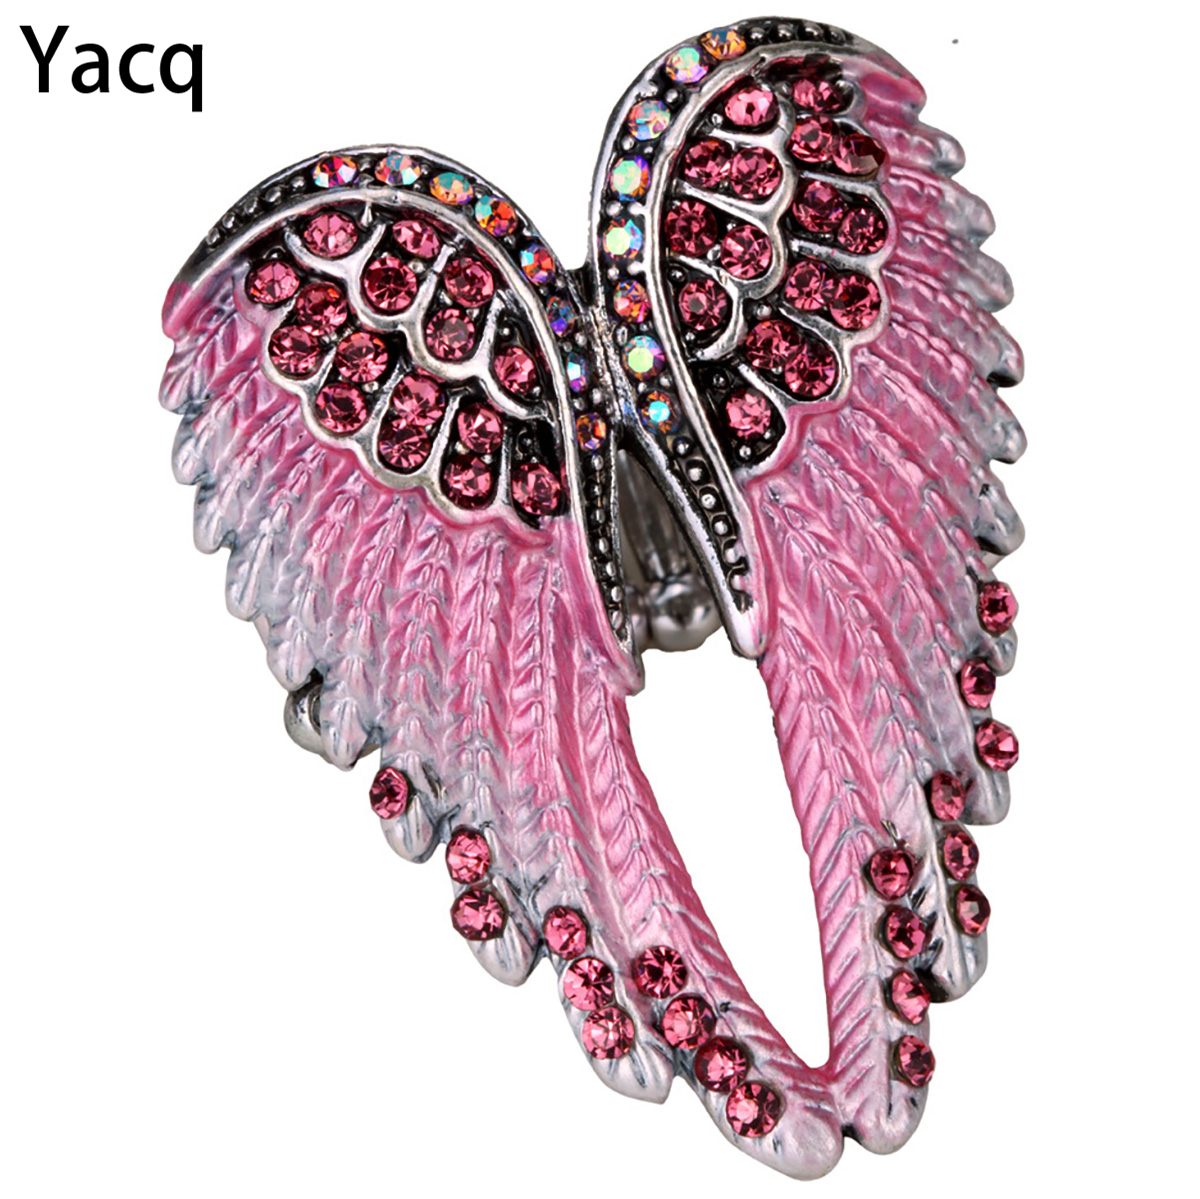 YACQ Angel Wings Stretch Ring Shalle Shporta Femra Biker Bling Bizhuteri Crystal Gifts